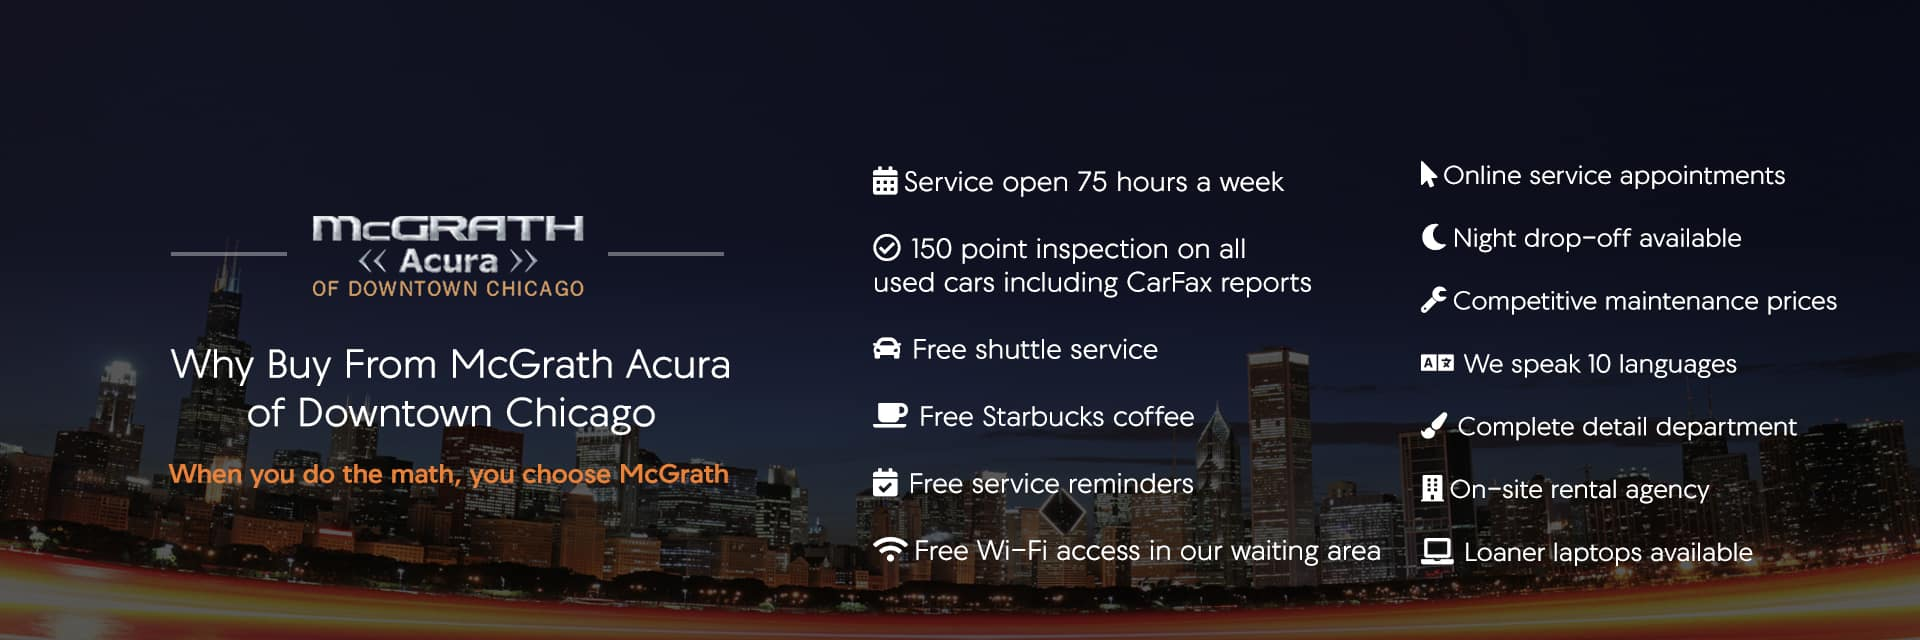 Why Buy McGrath Acura